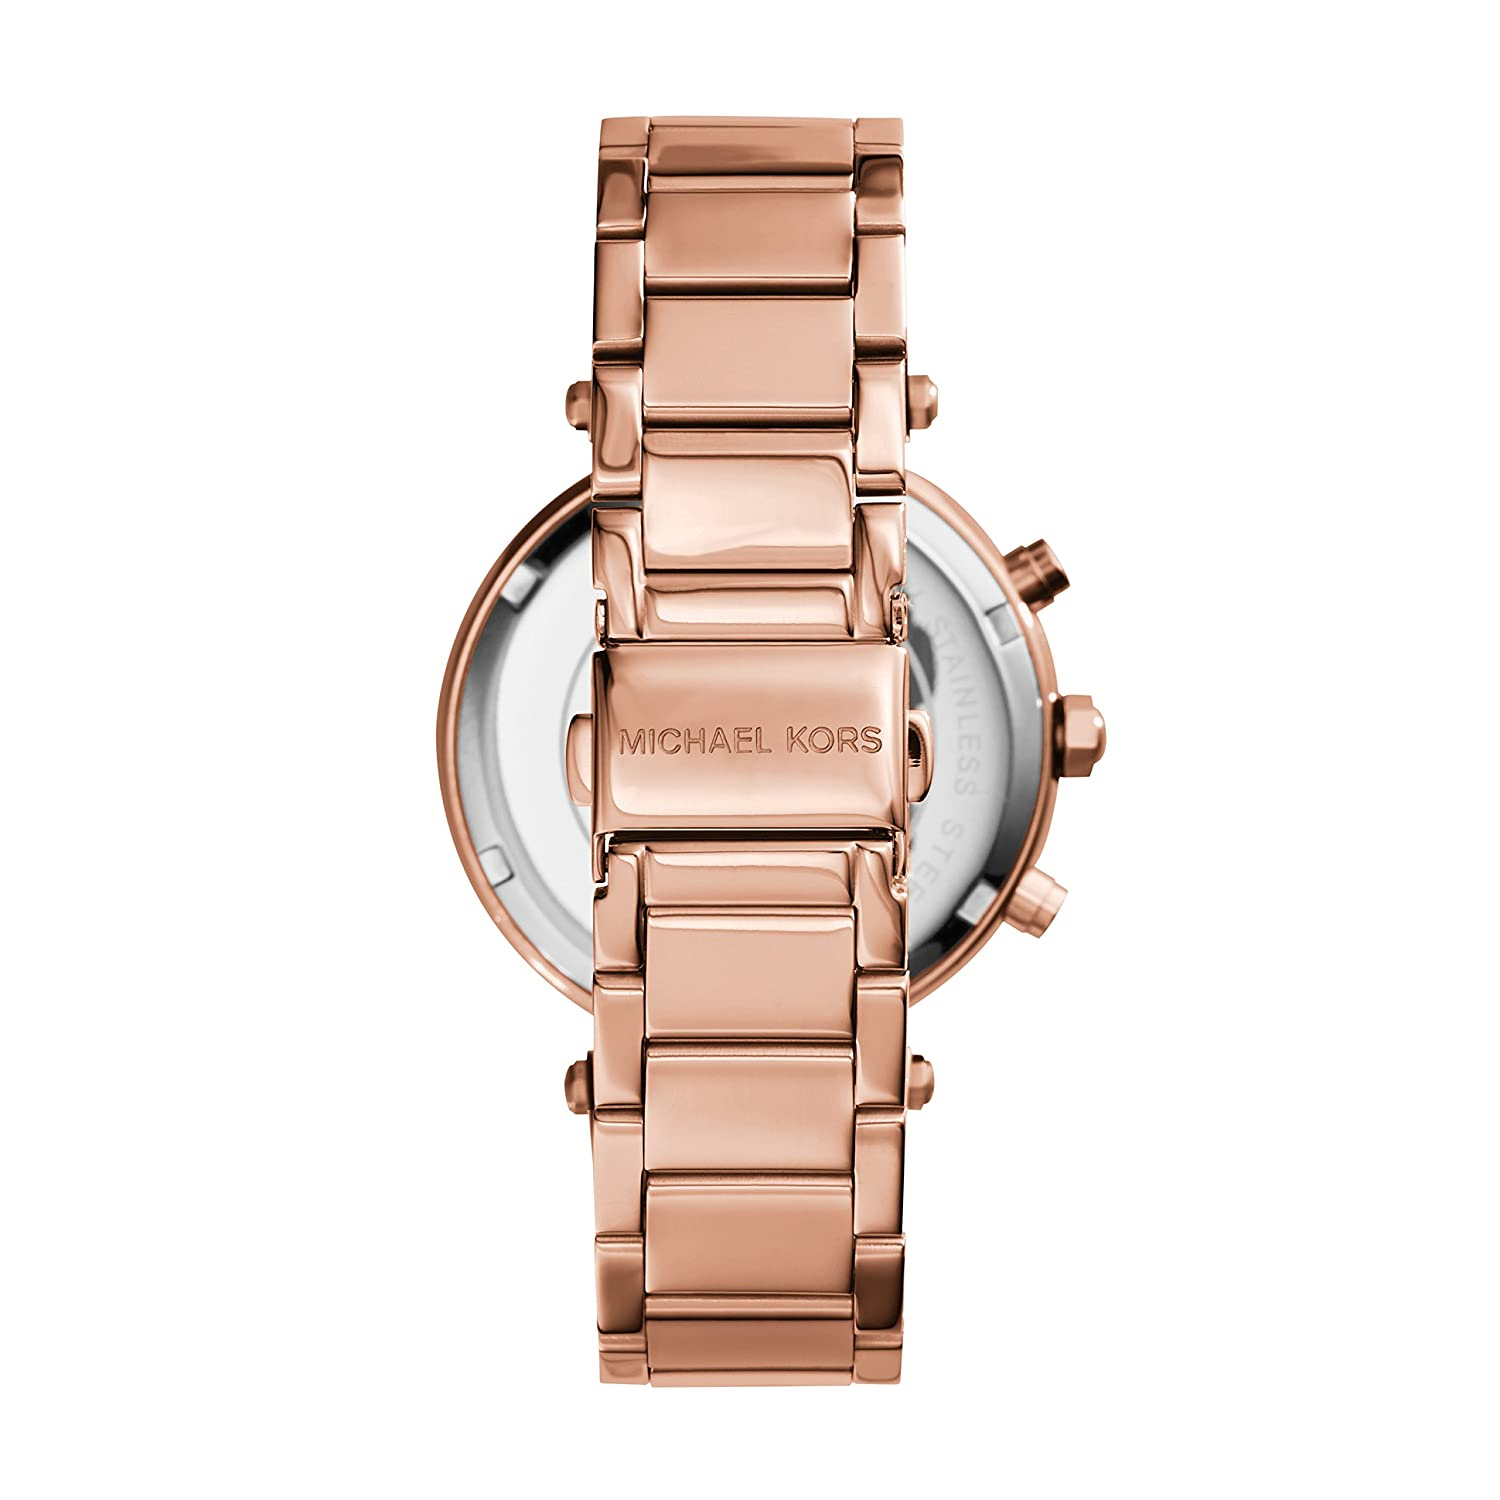 5dcf90dd356e Michael Kors Women s Watch MK5491  Michael Kors  Amazon.co.uk  Watches